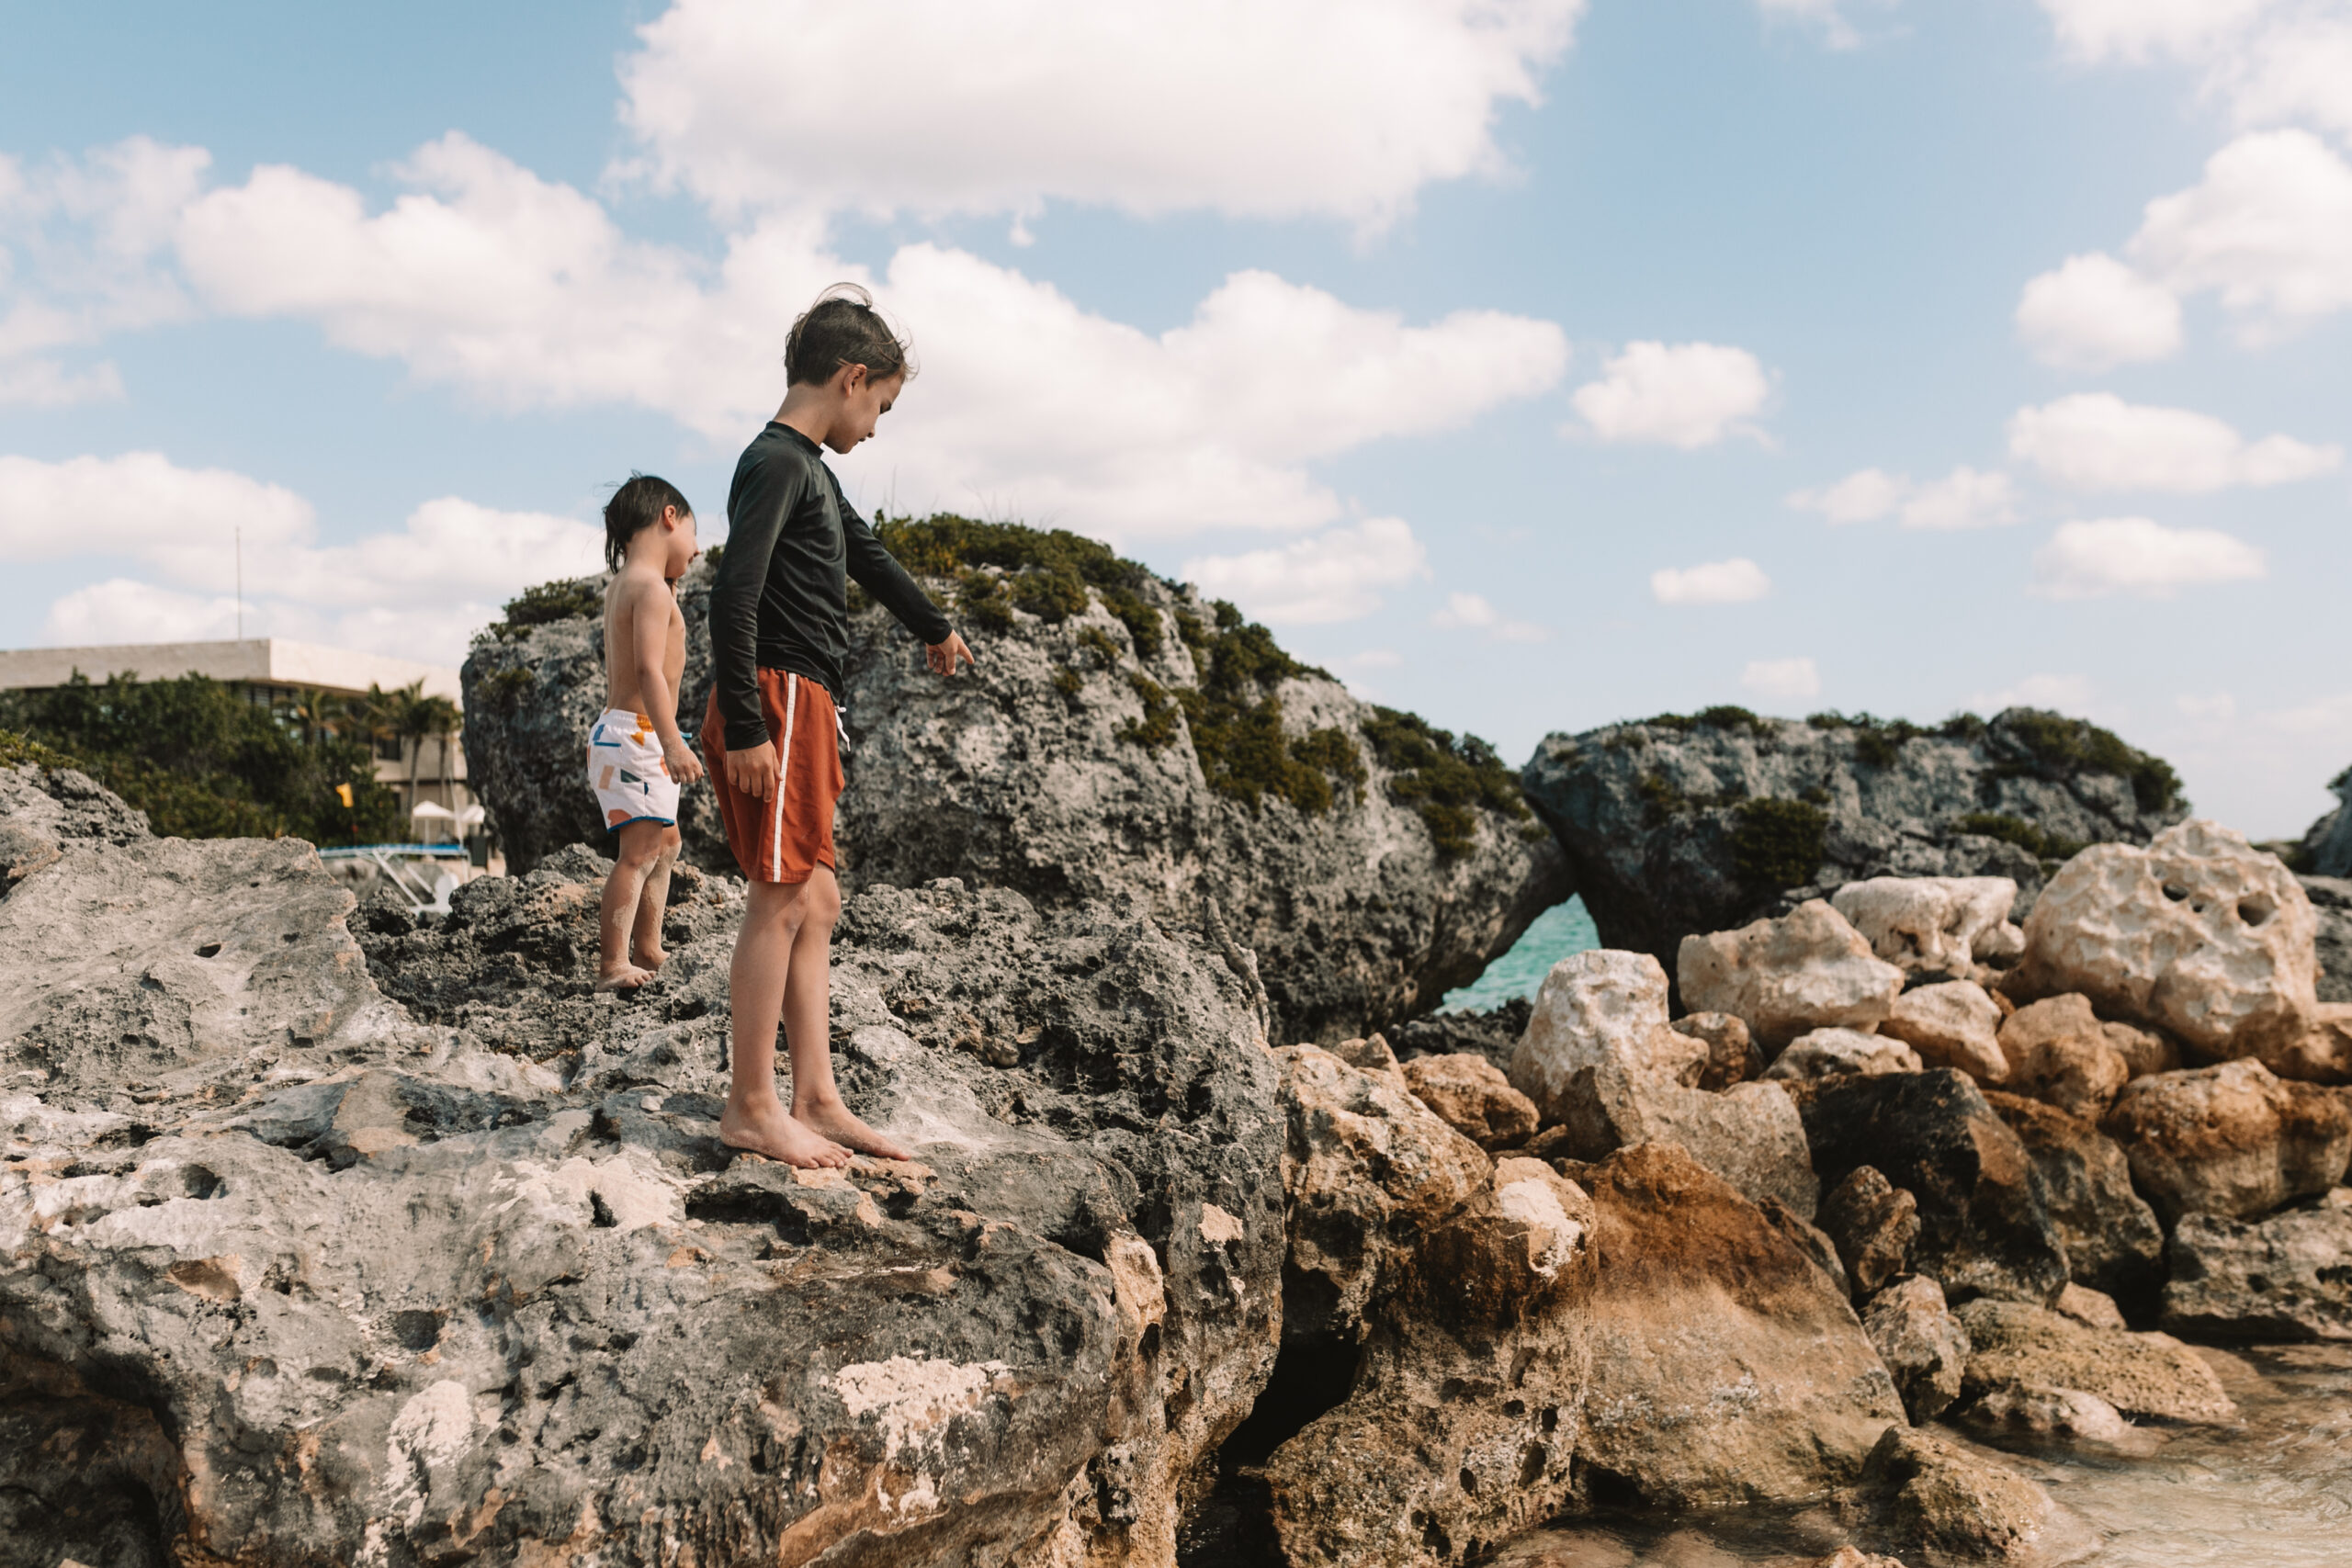 finding seashells during our trip to the riviera maya, mexico #travelwithkids #familytravel #beachtrip #wanderlust